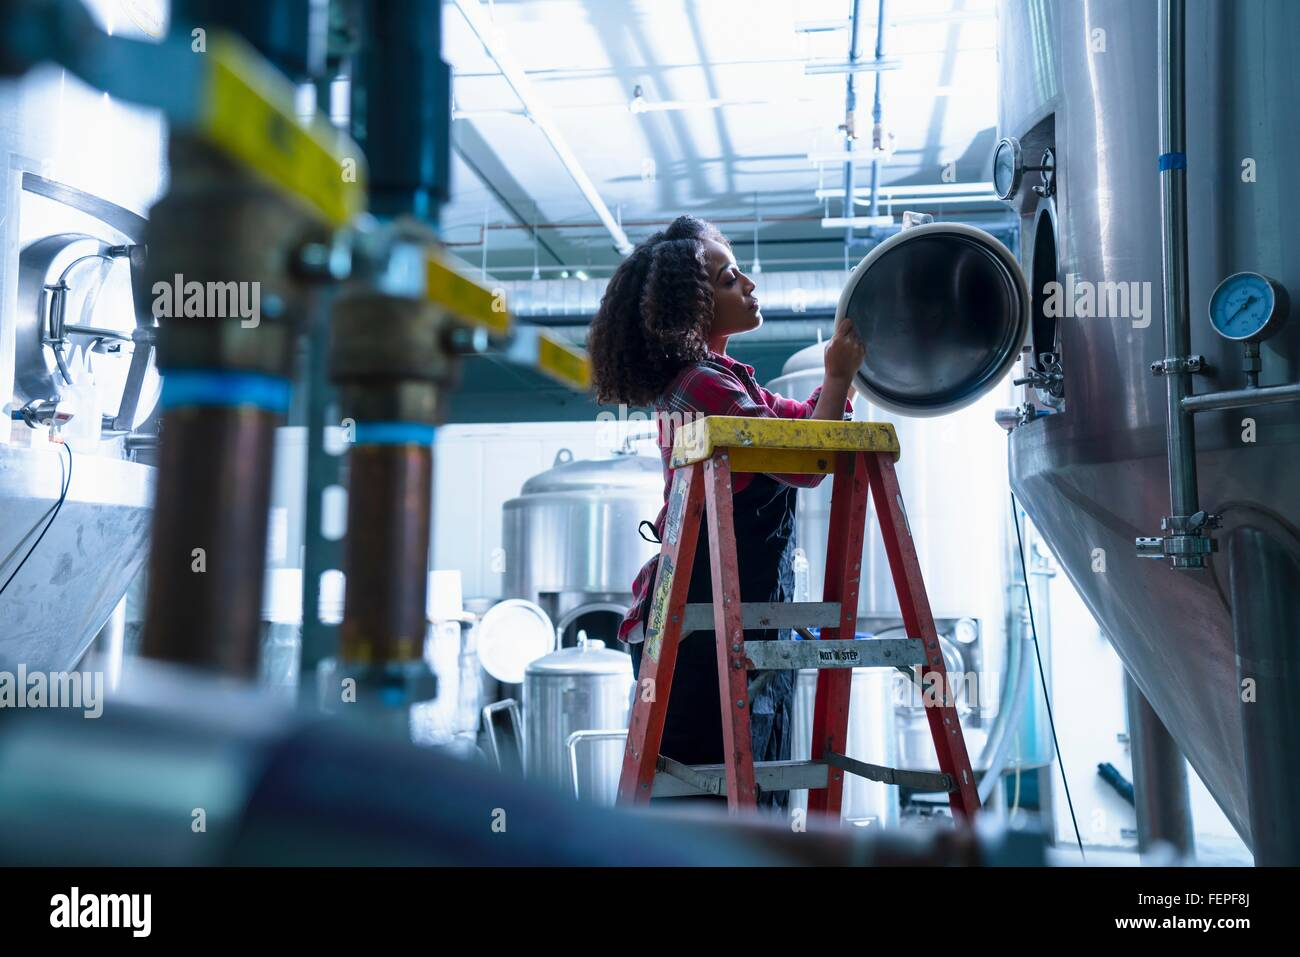 Mid adult woman in brewery on stepladder looking into conical fermentation tank Stock Photo